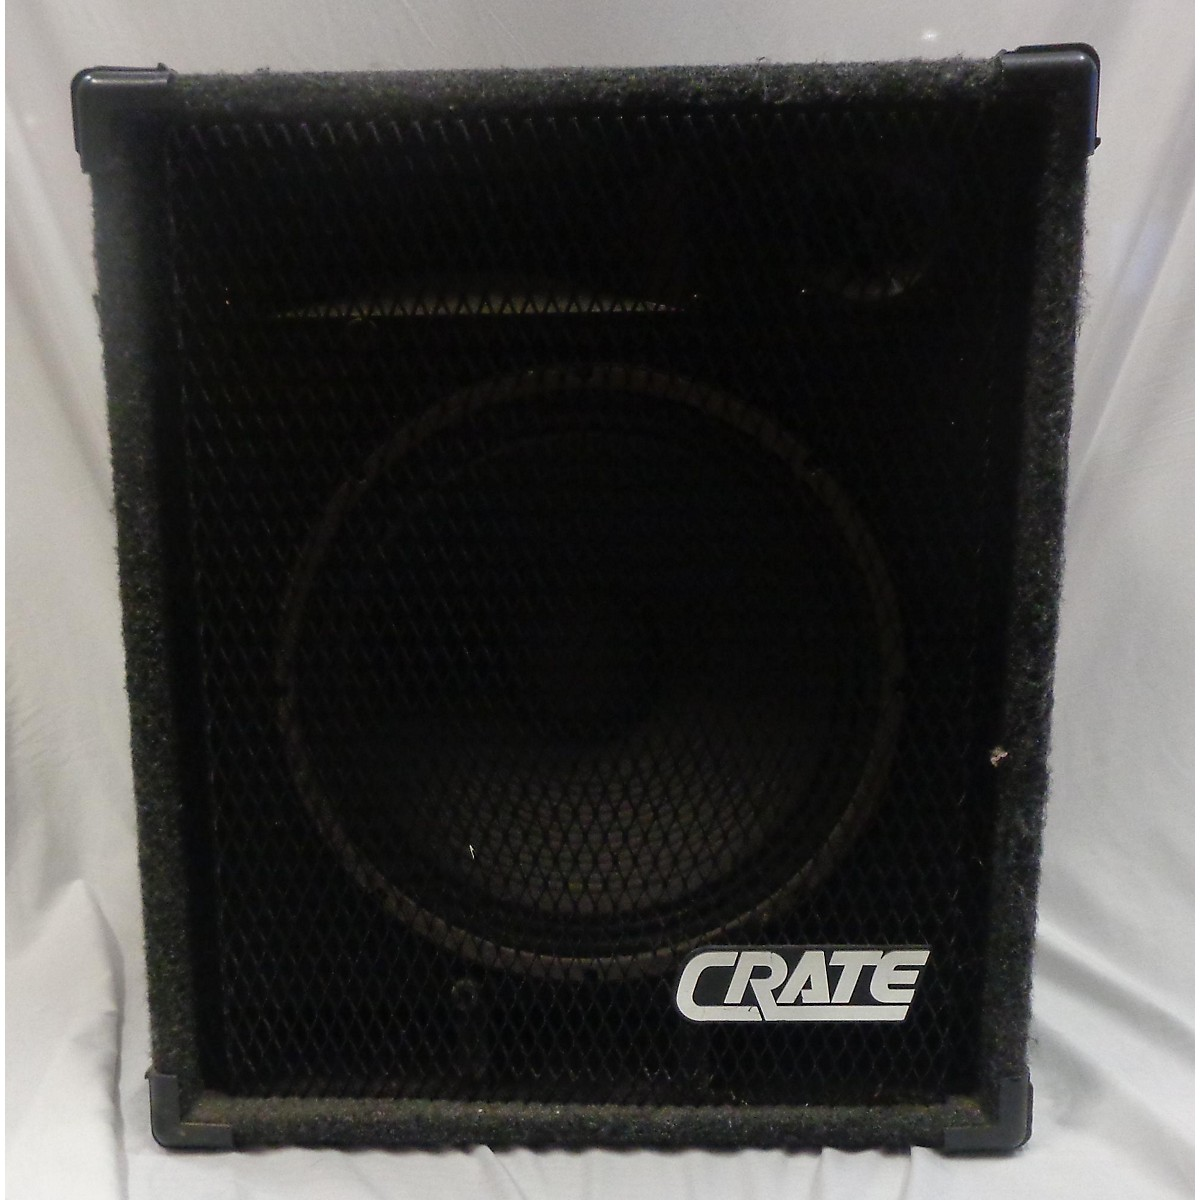 Crate PS-115HP Bass Cabinet